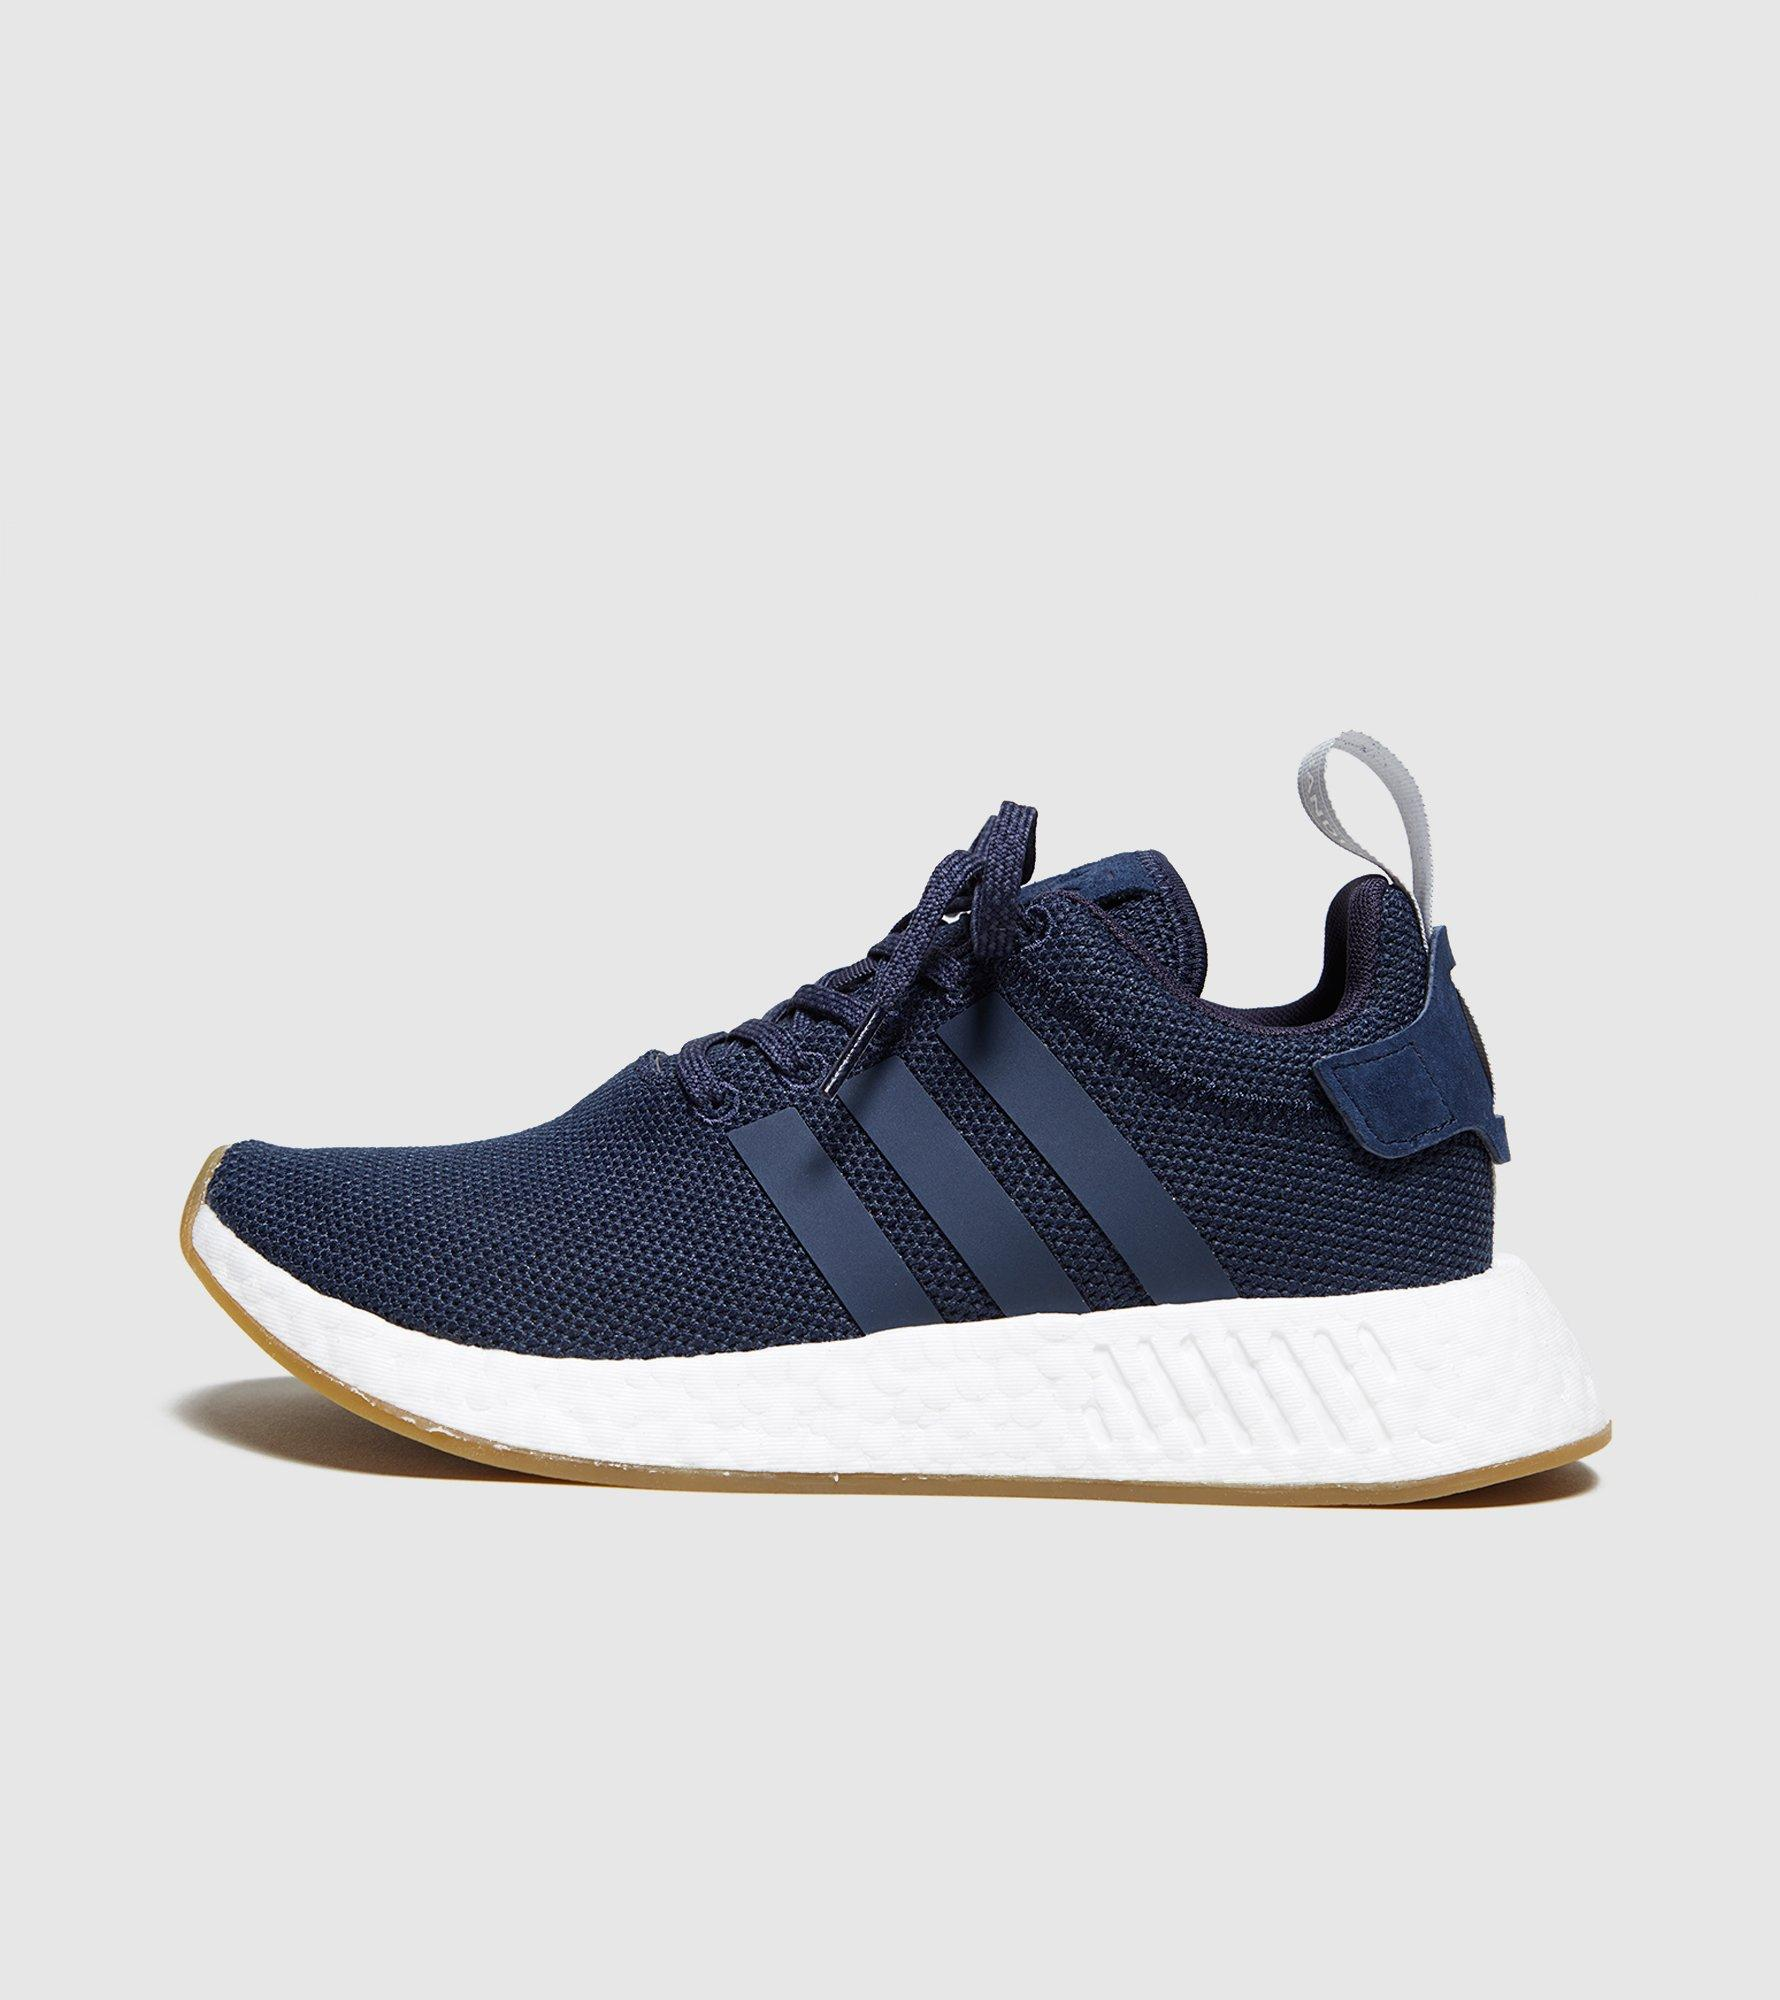 adidas nmd r2 white womens adidas gazelle 2 blue and red